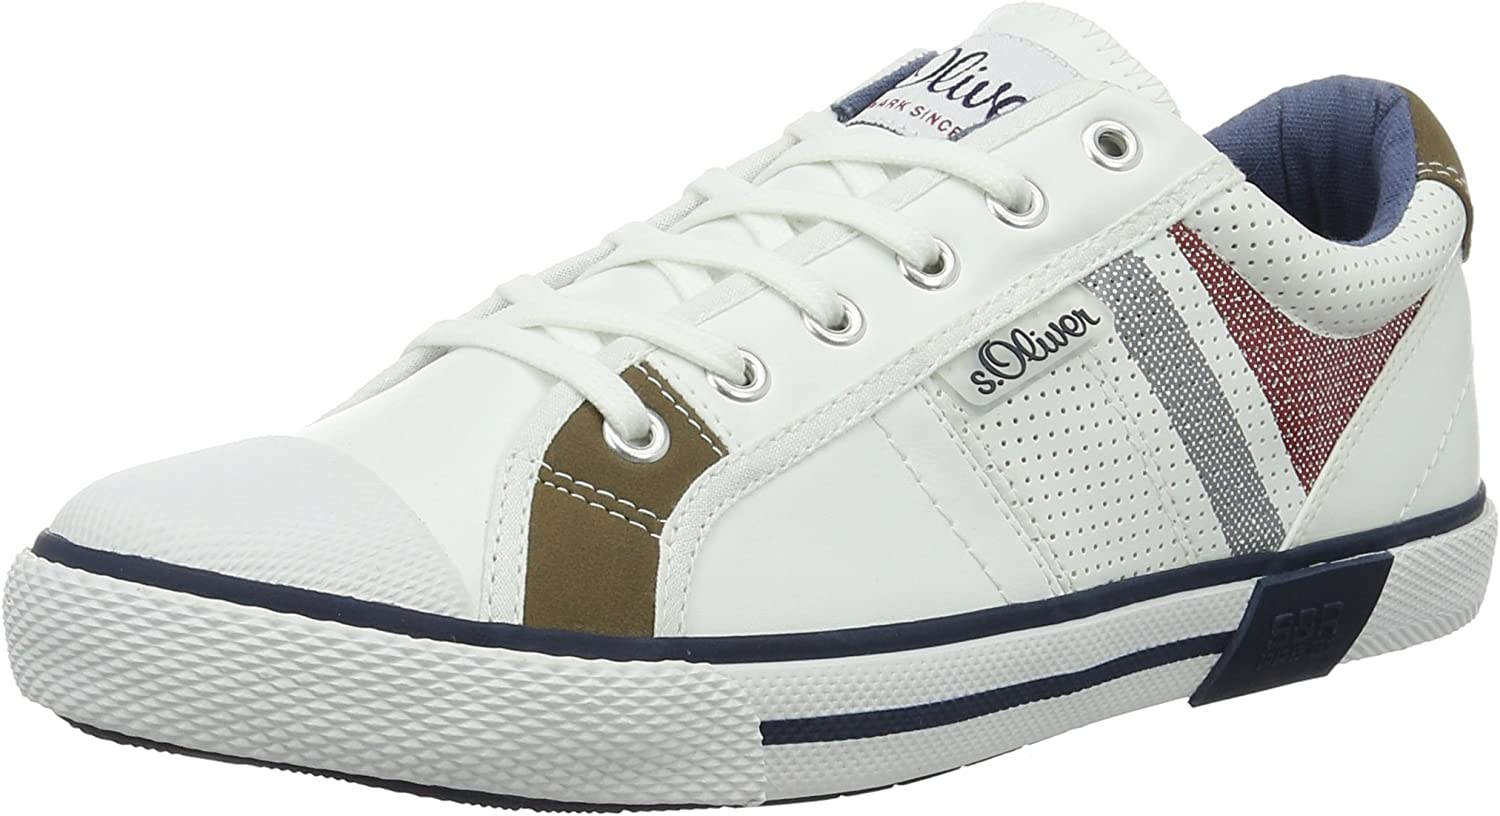 S.Oliver Men's 13622 Low-Top Sneakers